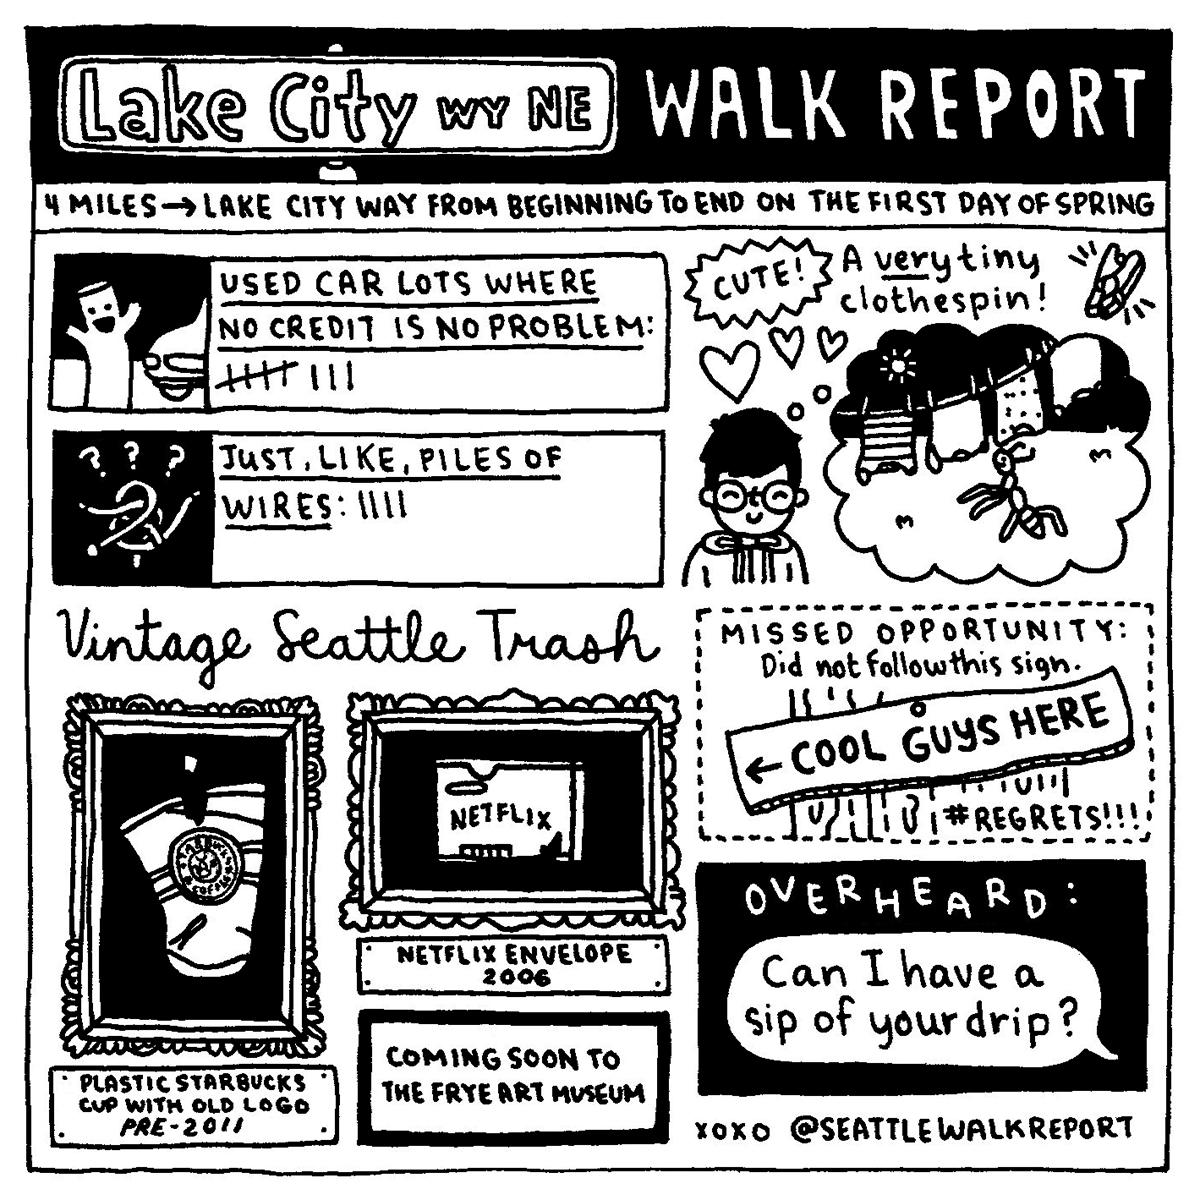 { }Lake City Way N.E. (Image: @seattlewalkreport / seattlerefined.com/seattlewalkreport)